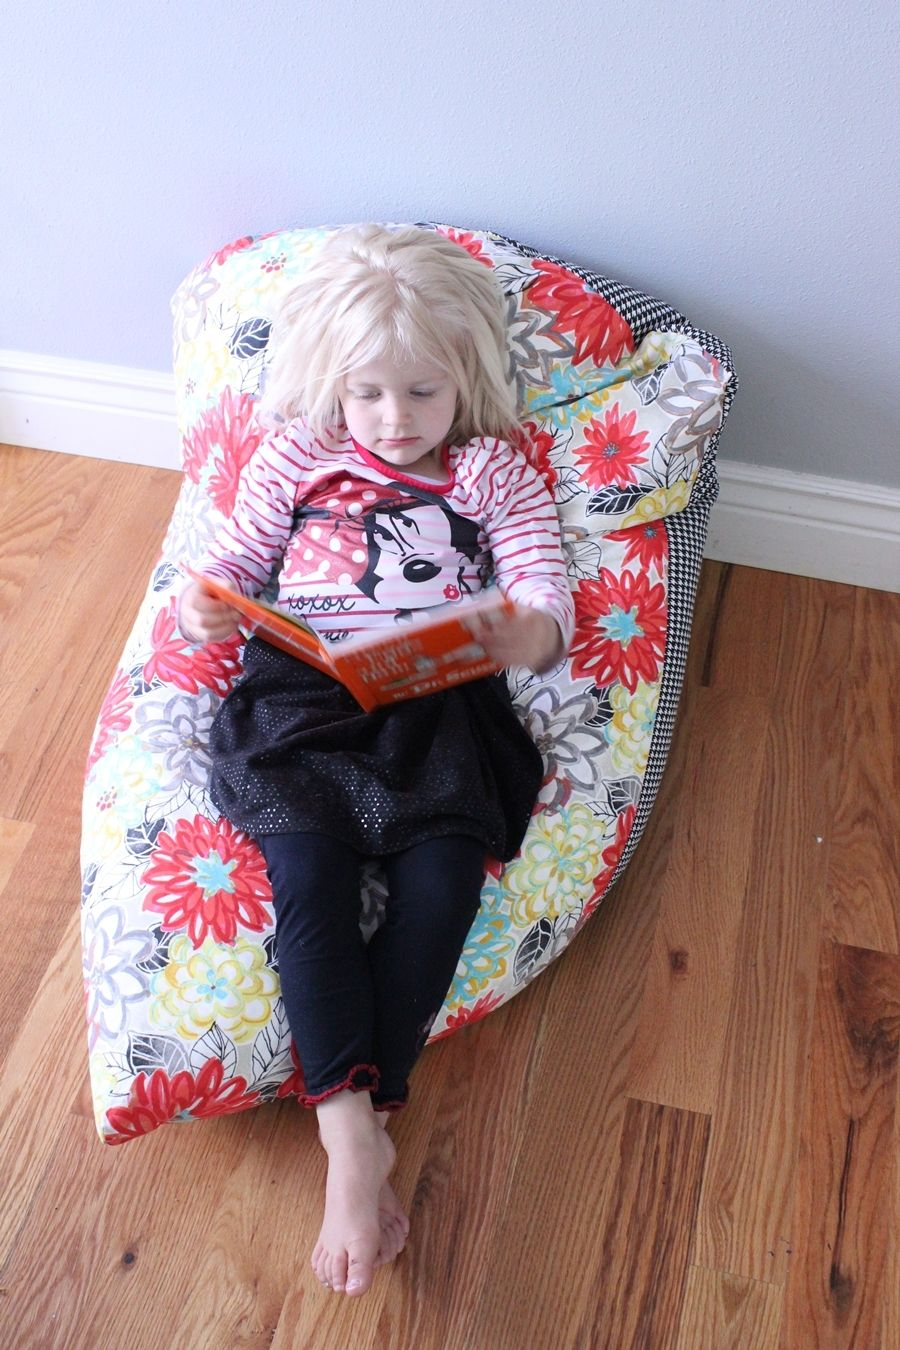 sc 1 st  Homedit & Super Simple DIY Kids Bean Bag Chair: A Step-by-Step Tutorial